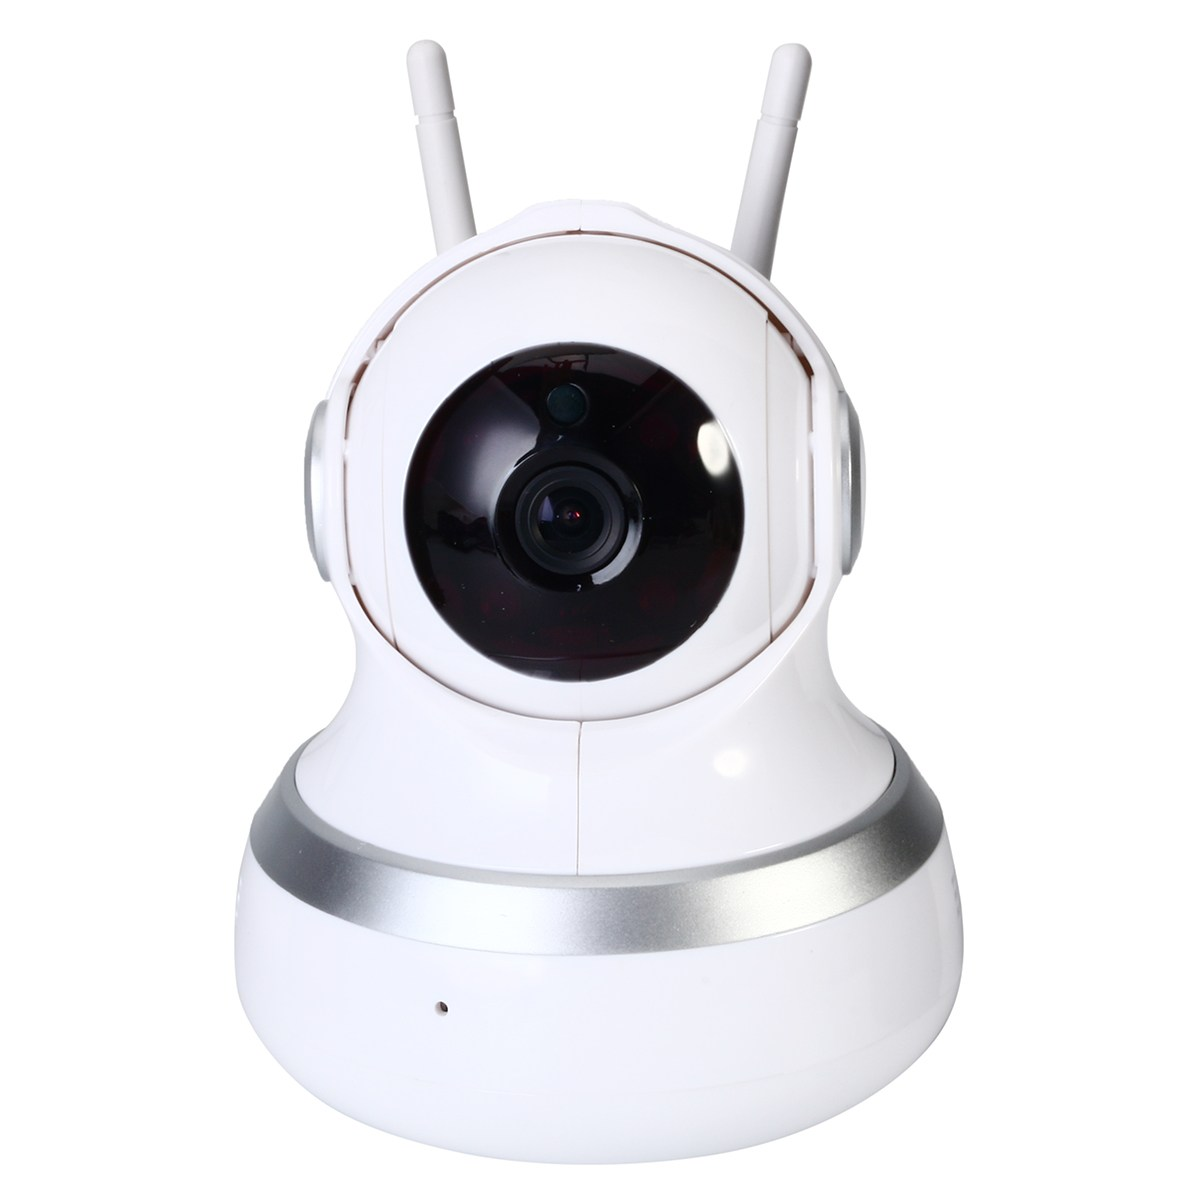 NEW Safurance Home Security 720P HD IP Camera Wireless Smart WiFi WI-FI Audio CCTV Camera Home Security Baby Monitor new safurance welders dual leather